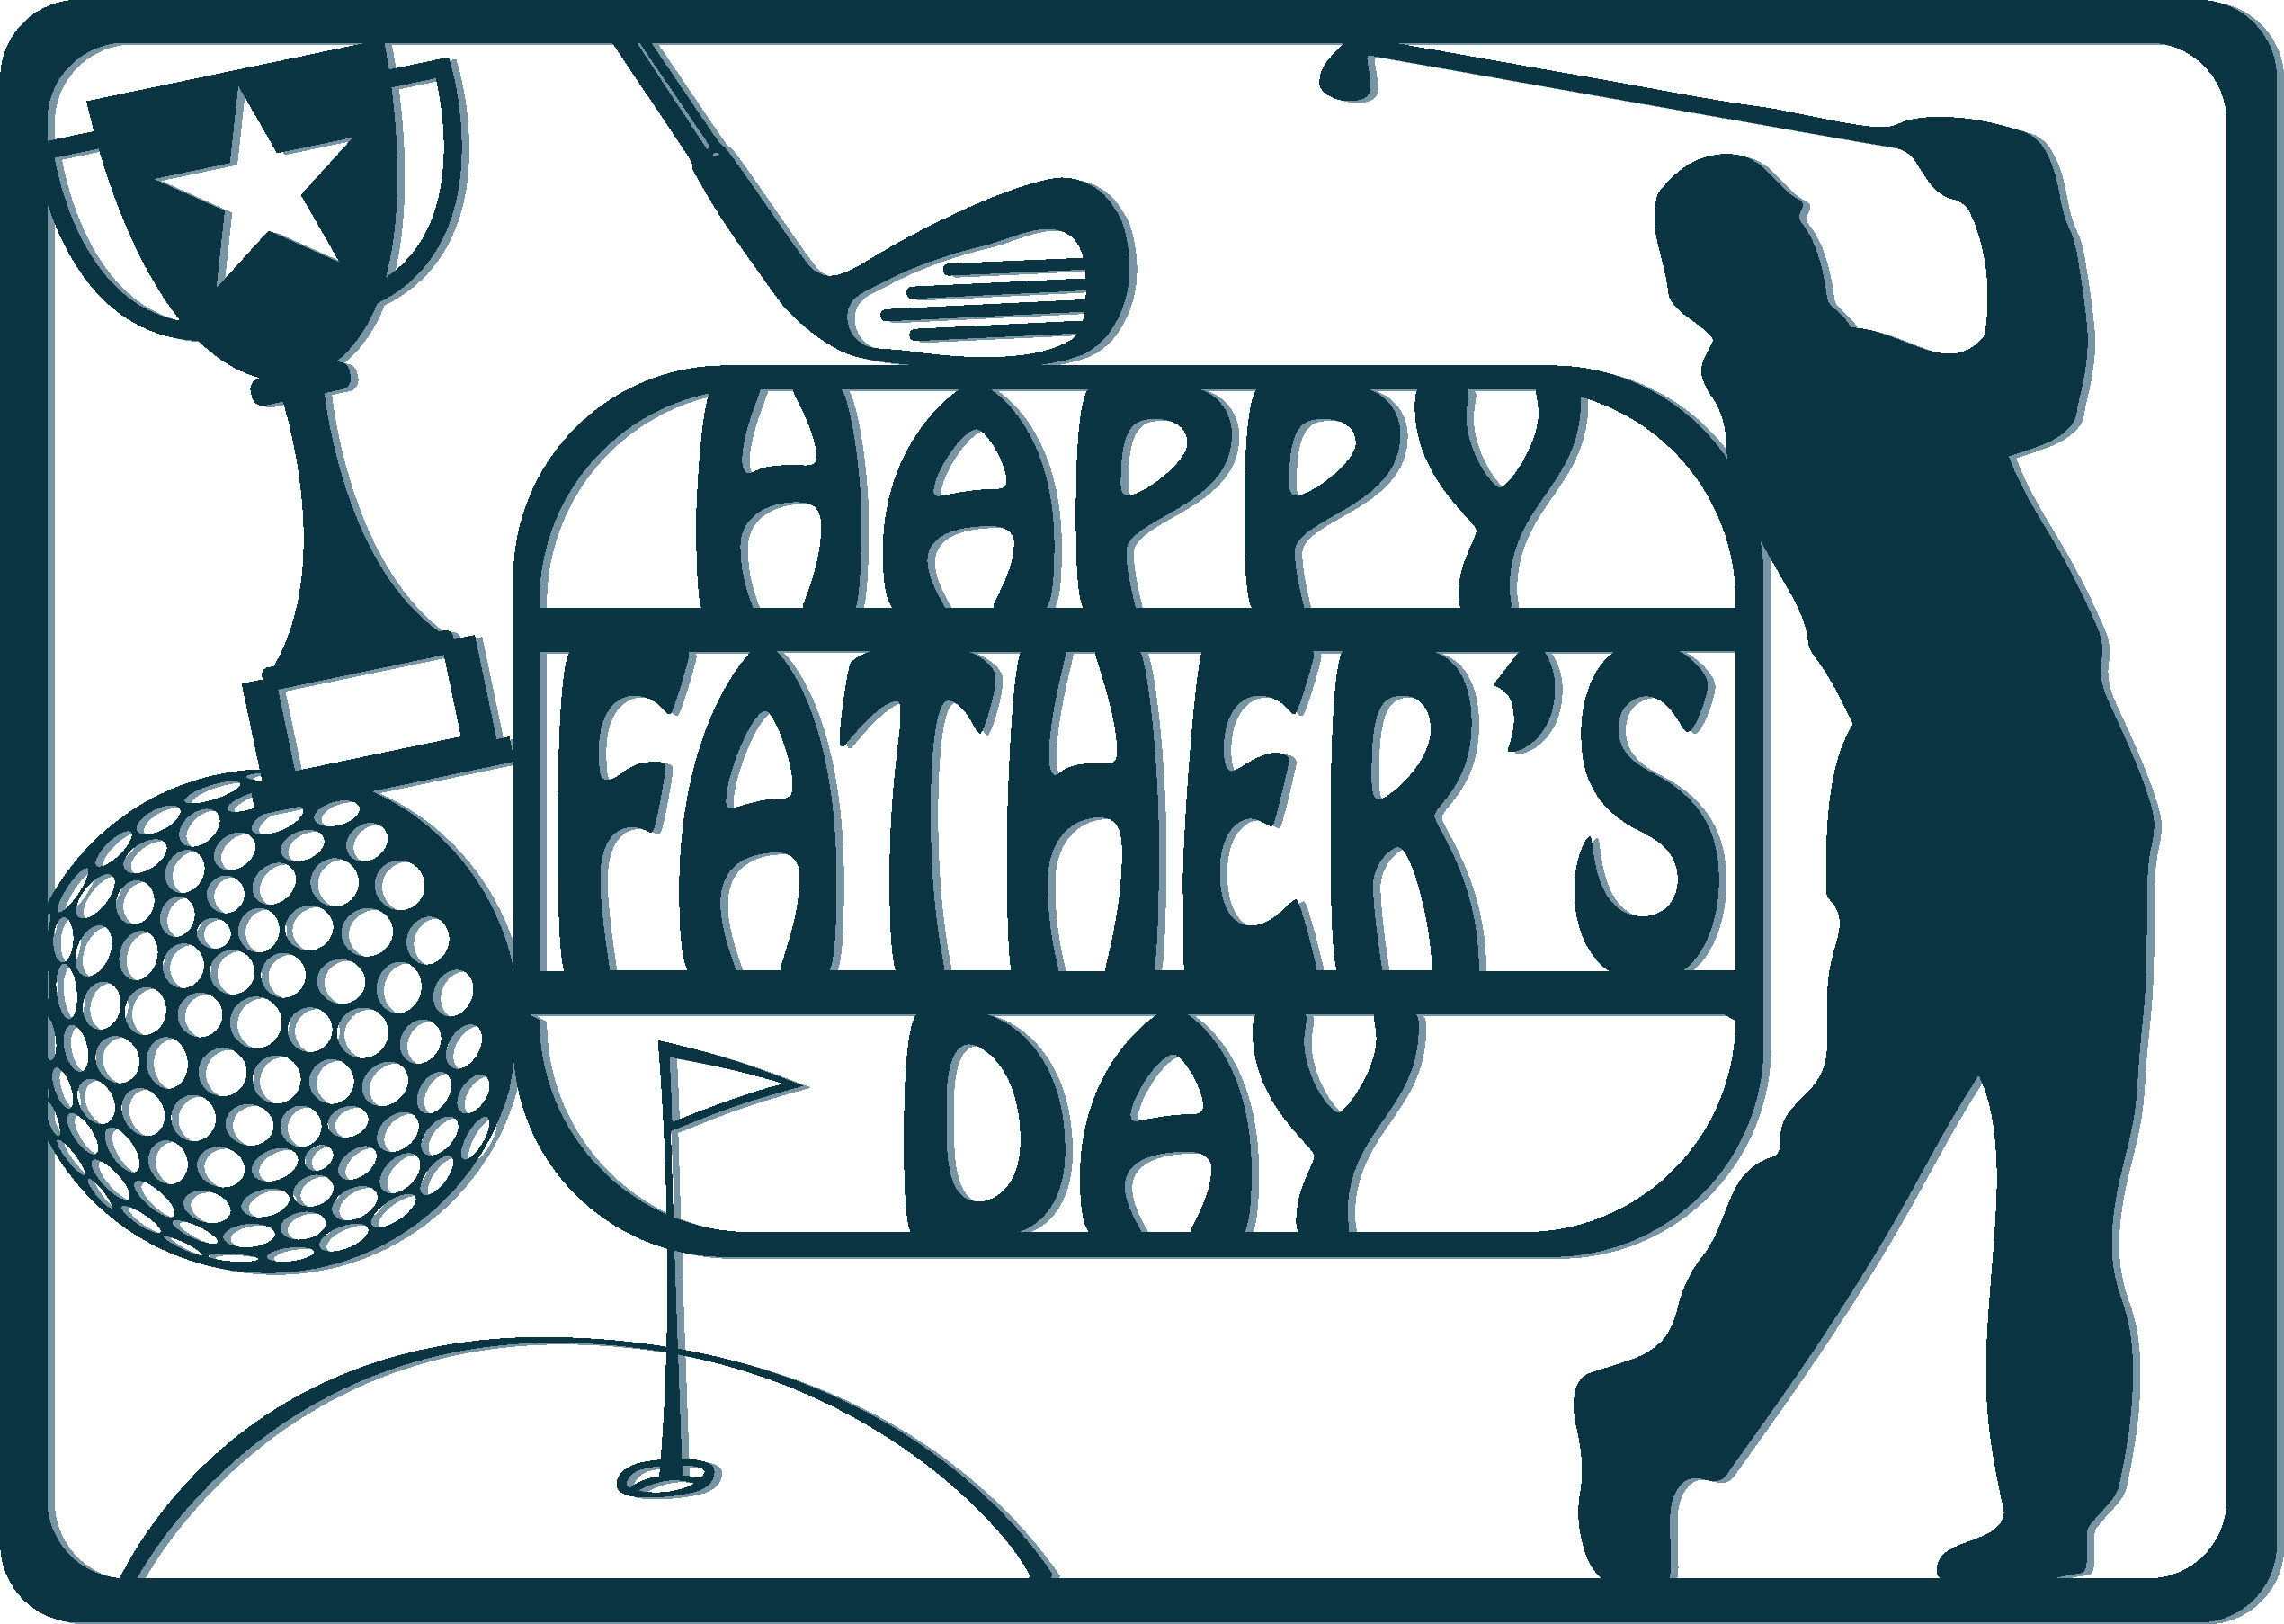 Download Free Father S Day Svg Cutting Overlays For Making Your Own Cards